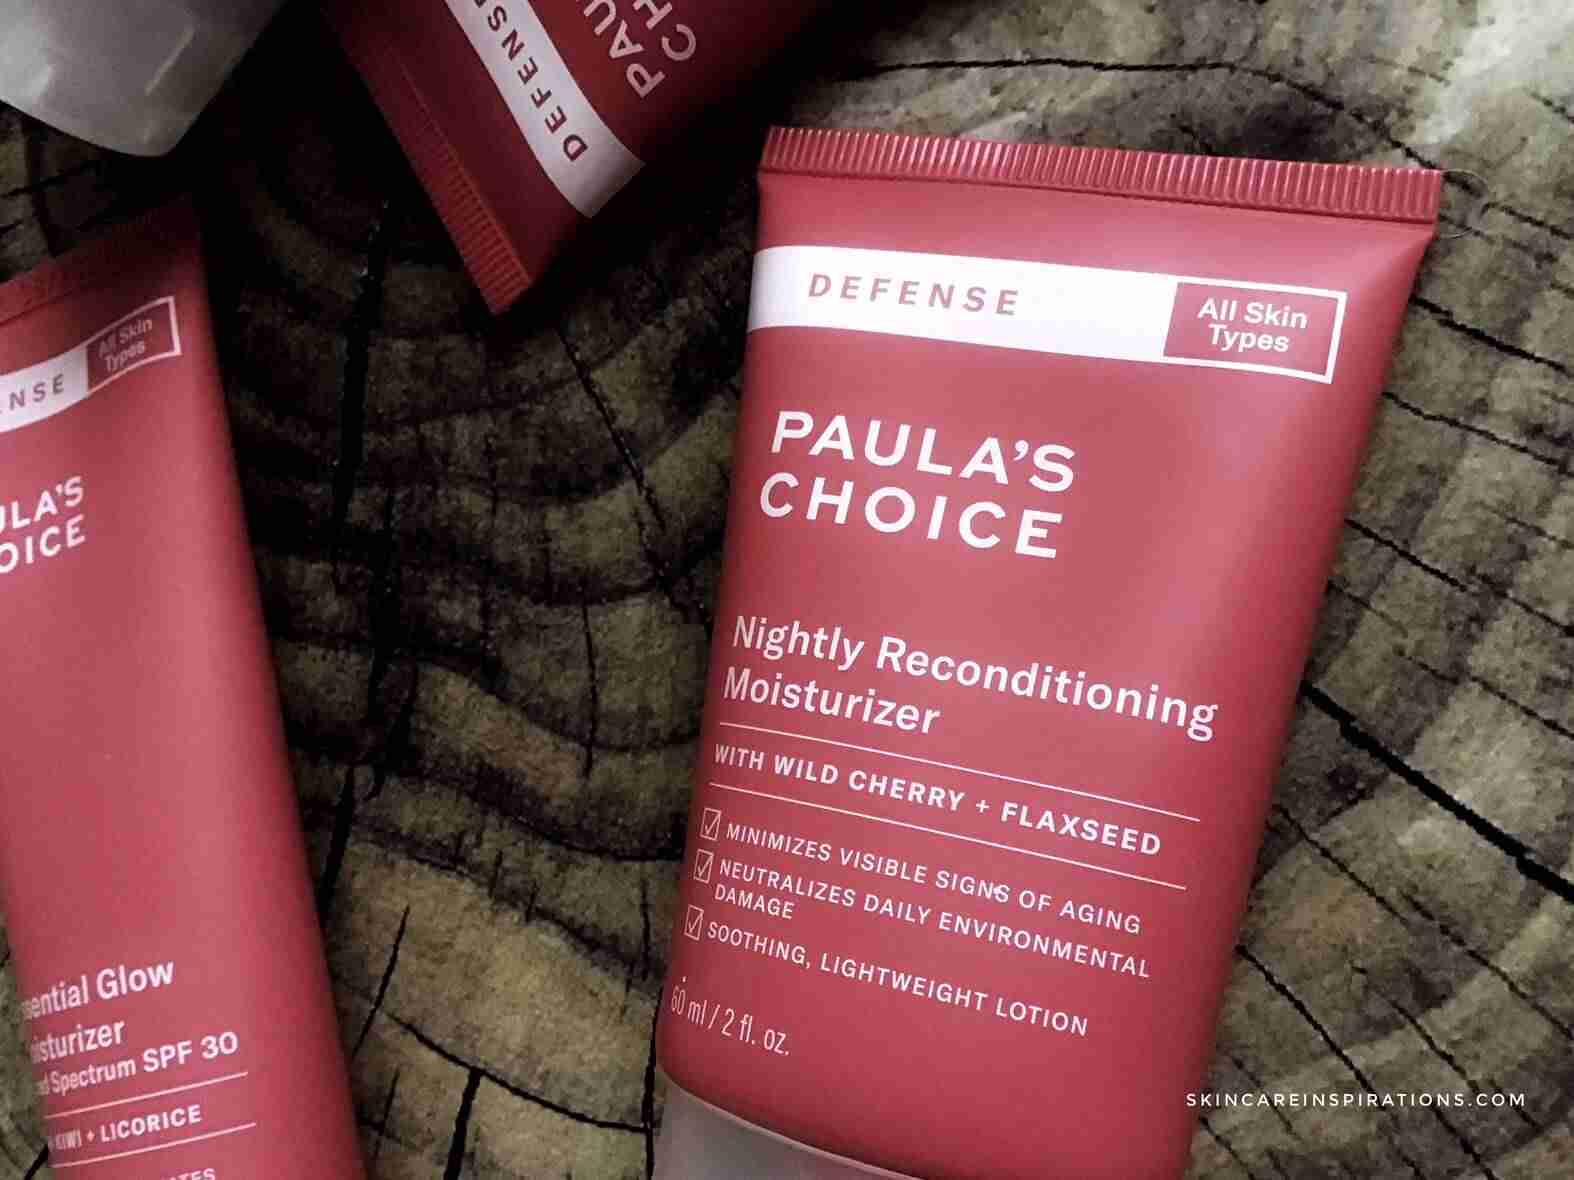 Paula's Choice Defense all skin type